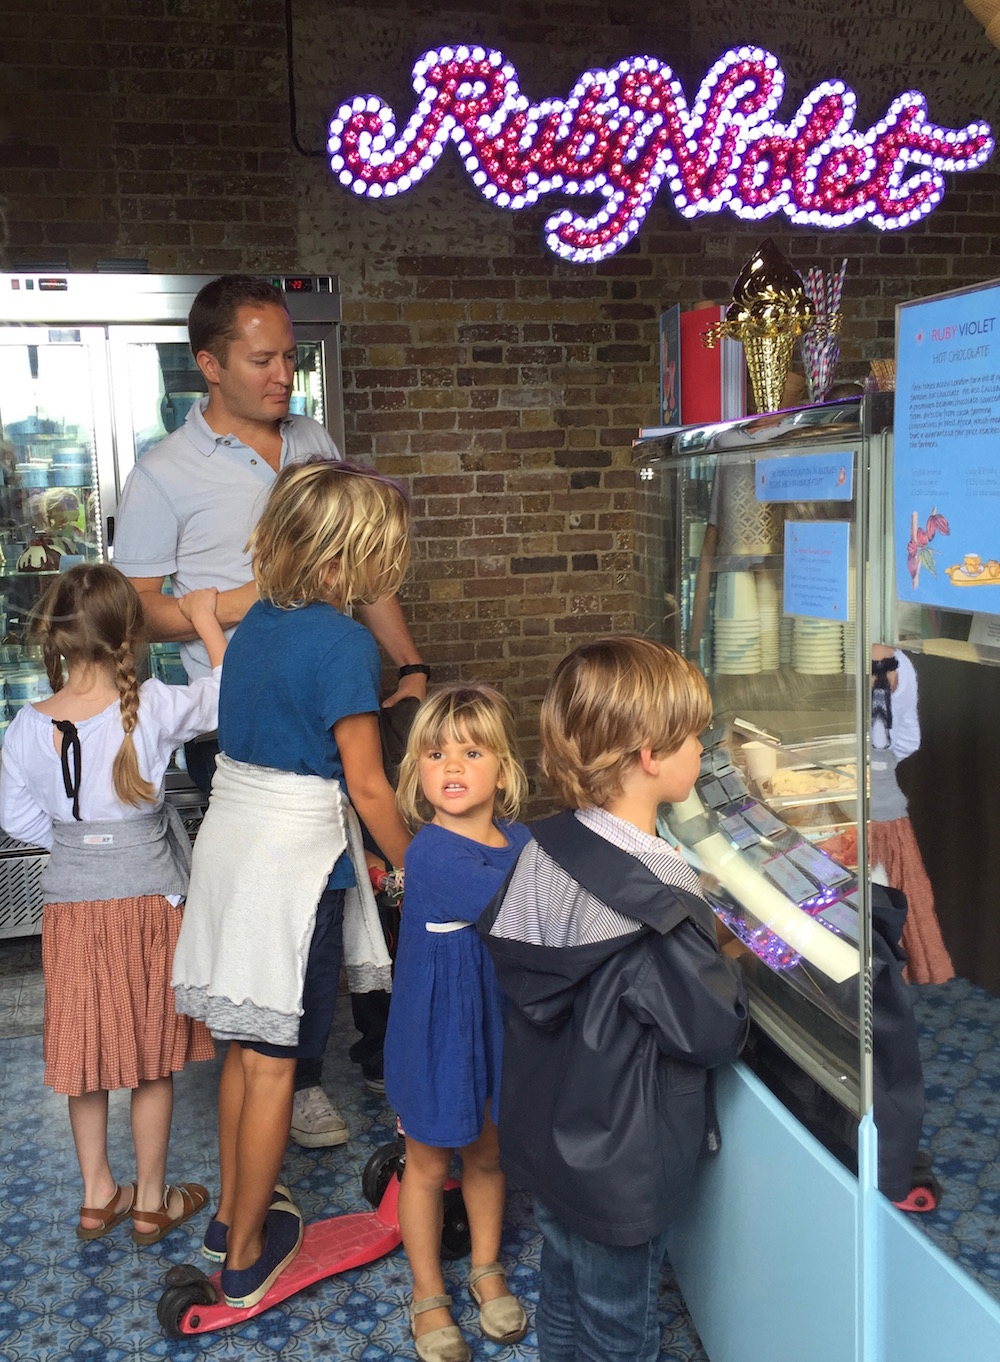 Getting Ice creams at Ruby Violet